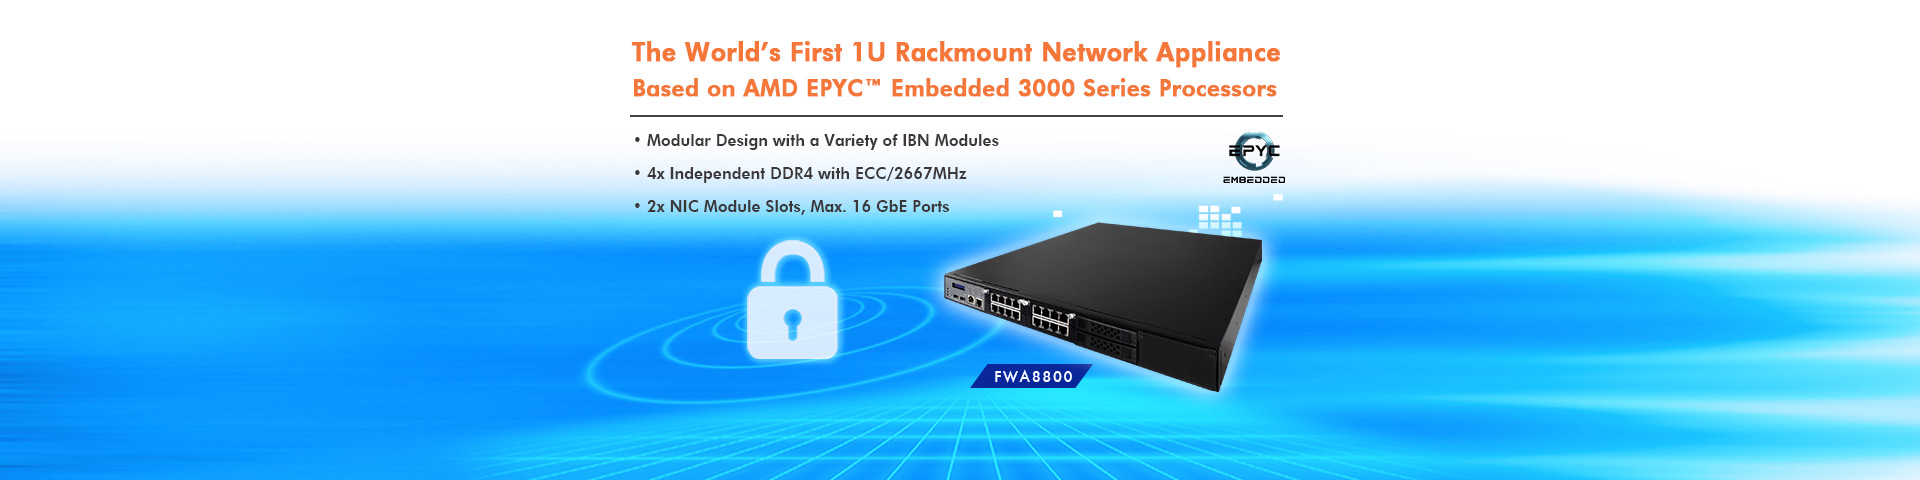 The World's First Network Appliance Based on AMD EPYC™ Embedded 3000 Series Processors